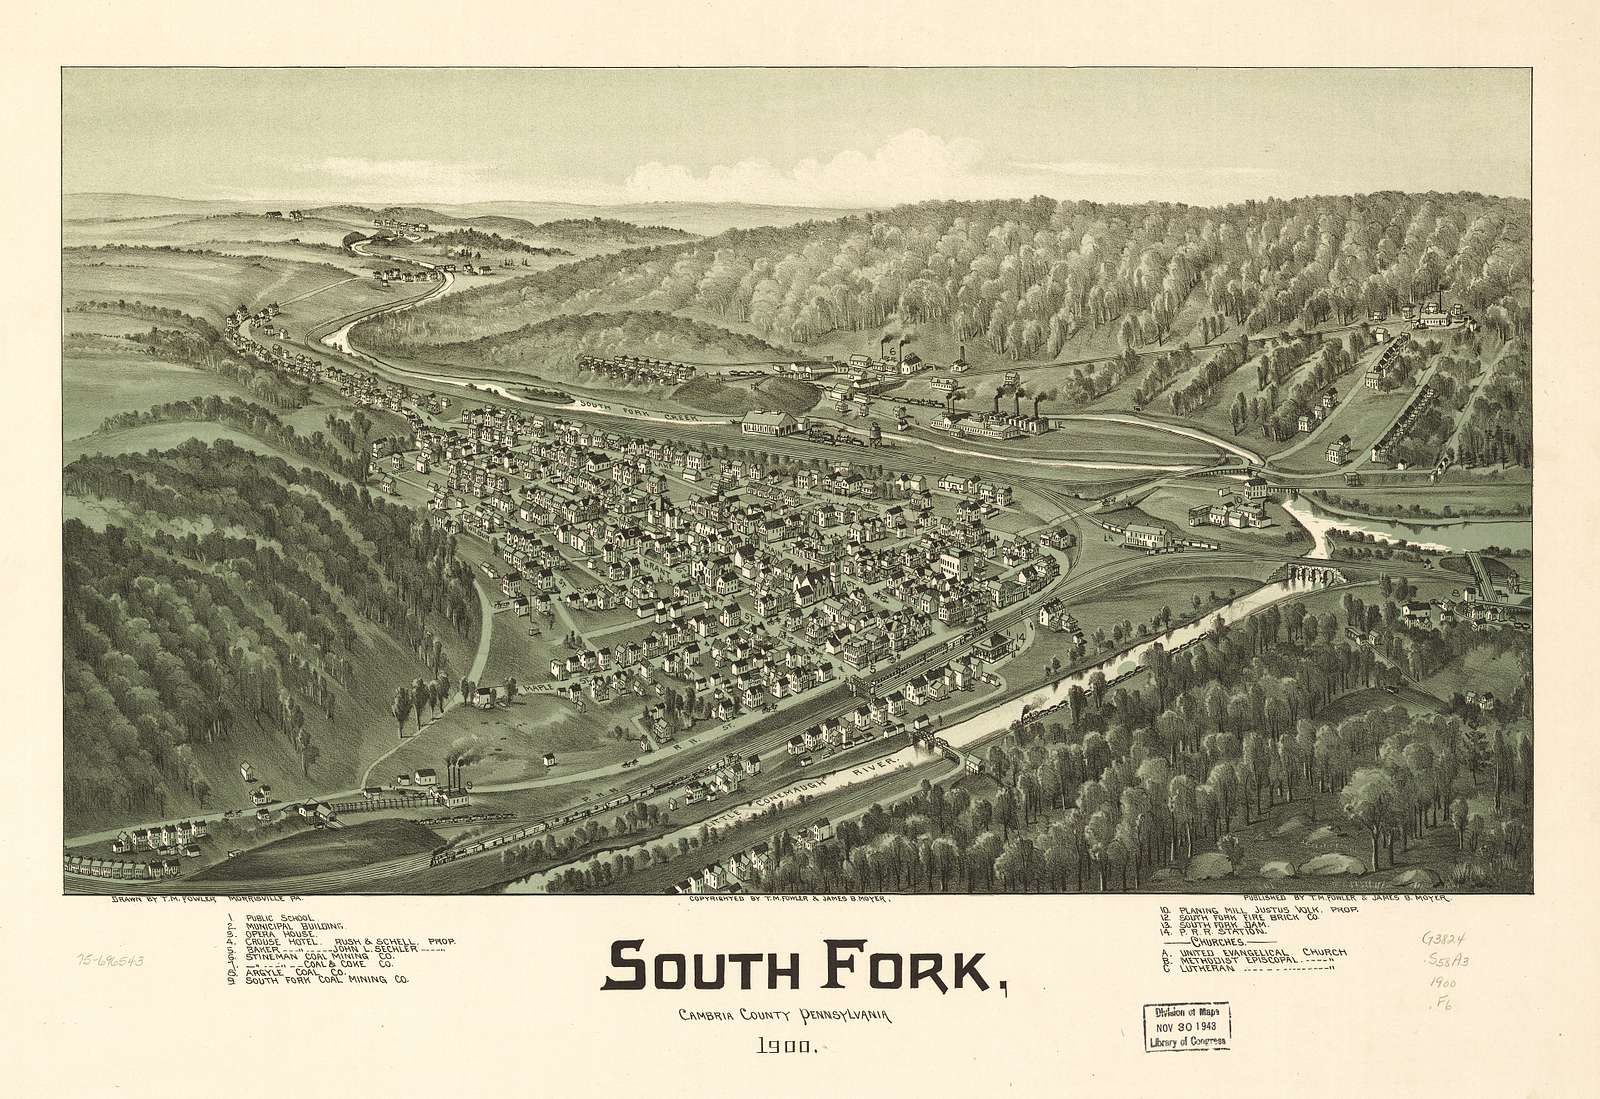 South Fork, Cambria County, Pennsylvania 1900.